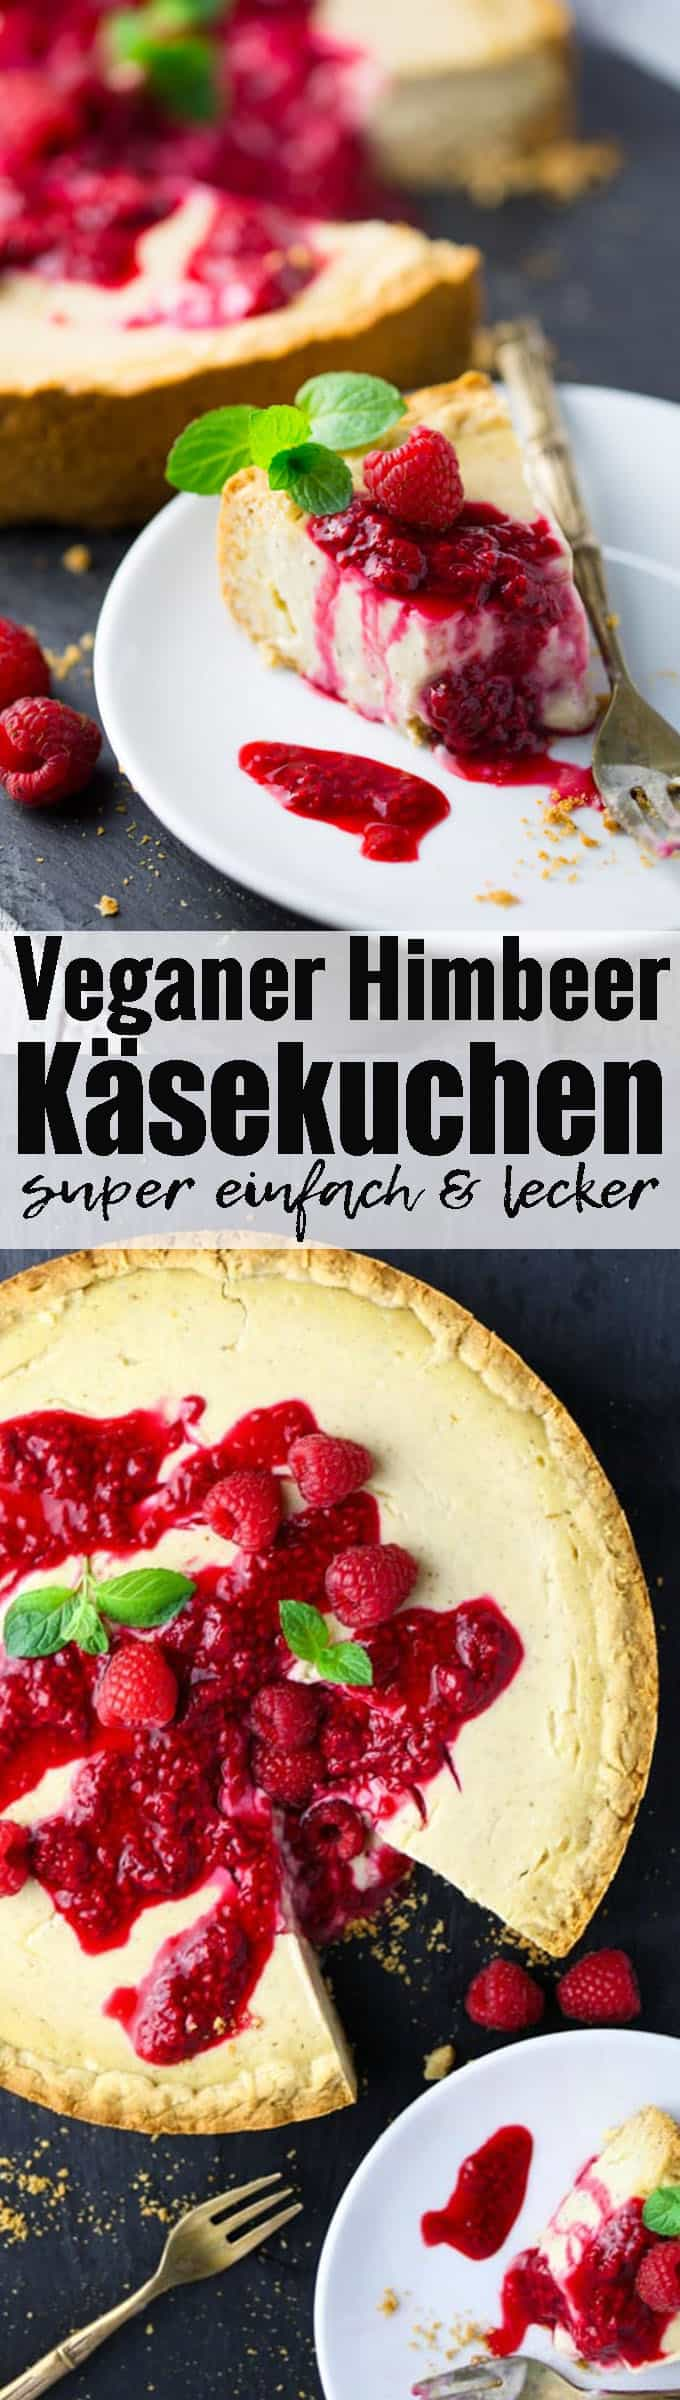 veganer k sekuchen mit himbeeren vegan heaven. Black Bedroom Furniture Sets. Home Design Ideas